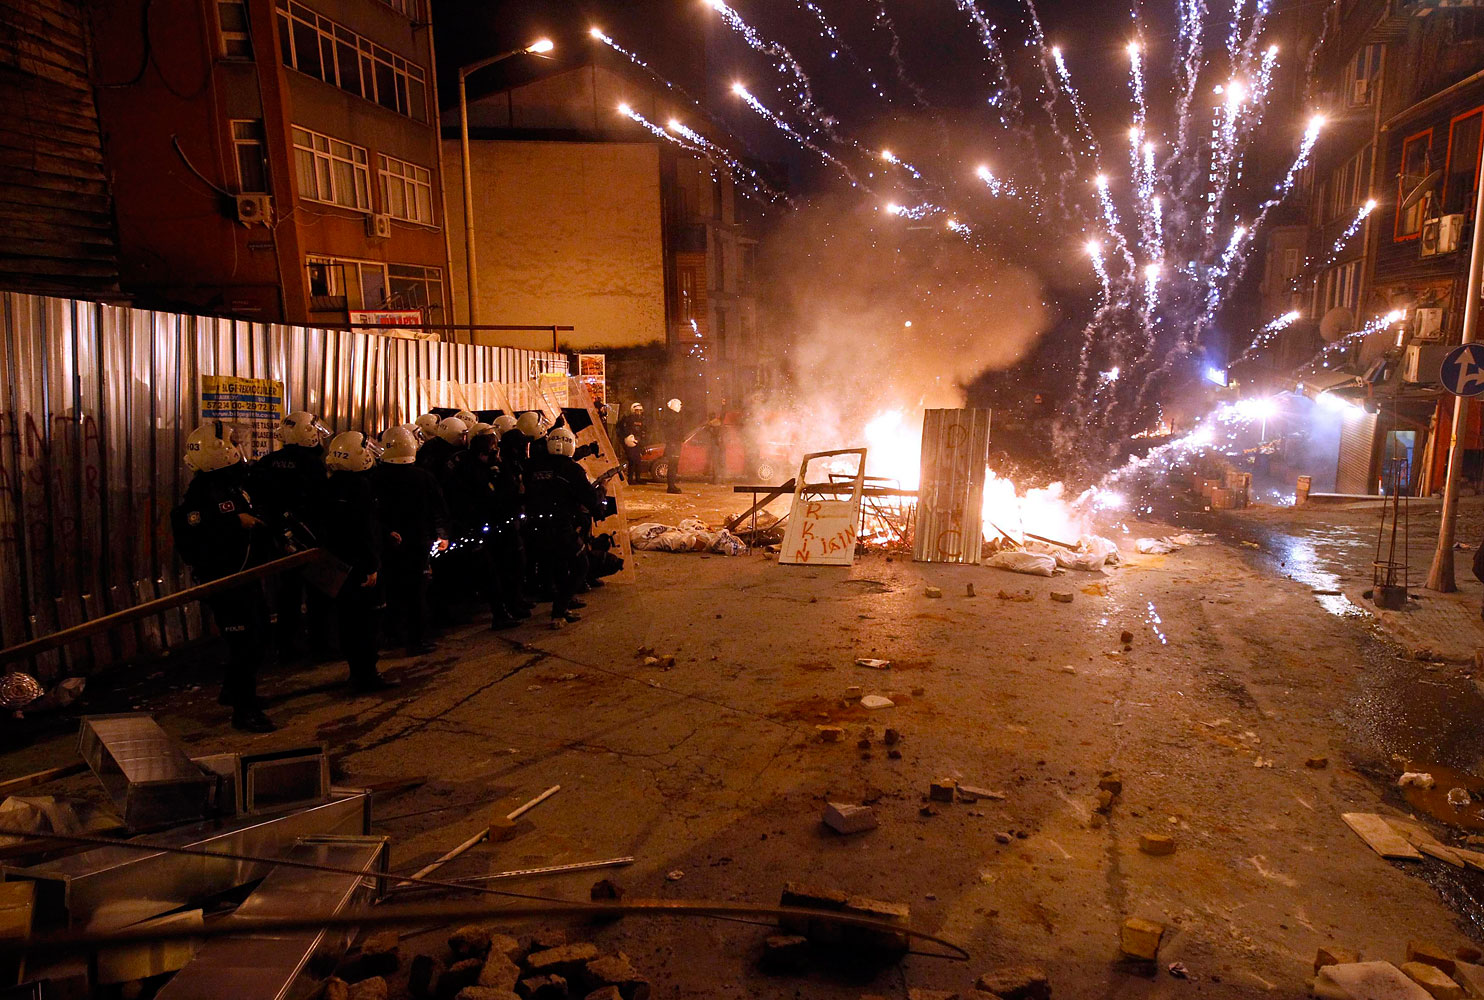 Riot policemen shield themselves as fireworks thrown by anti-government protesters explode near central Taksim square in Istanbul March 12, 2014.